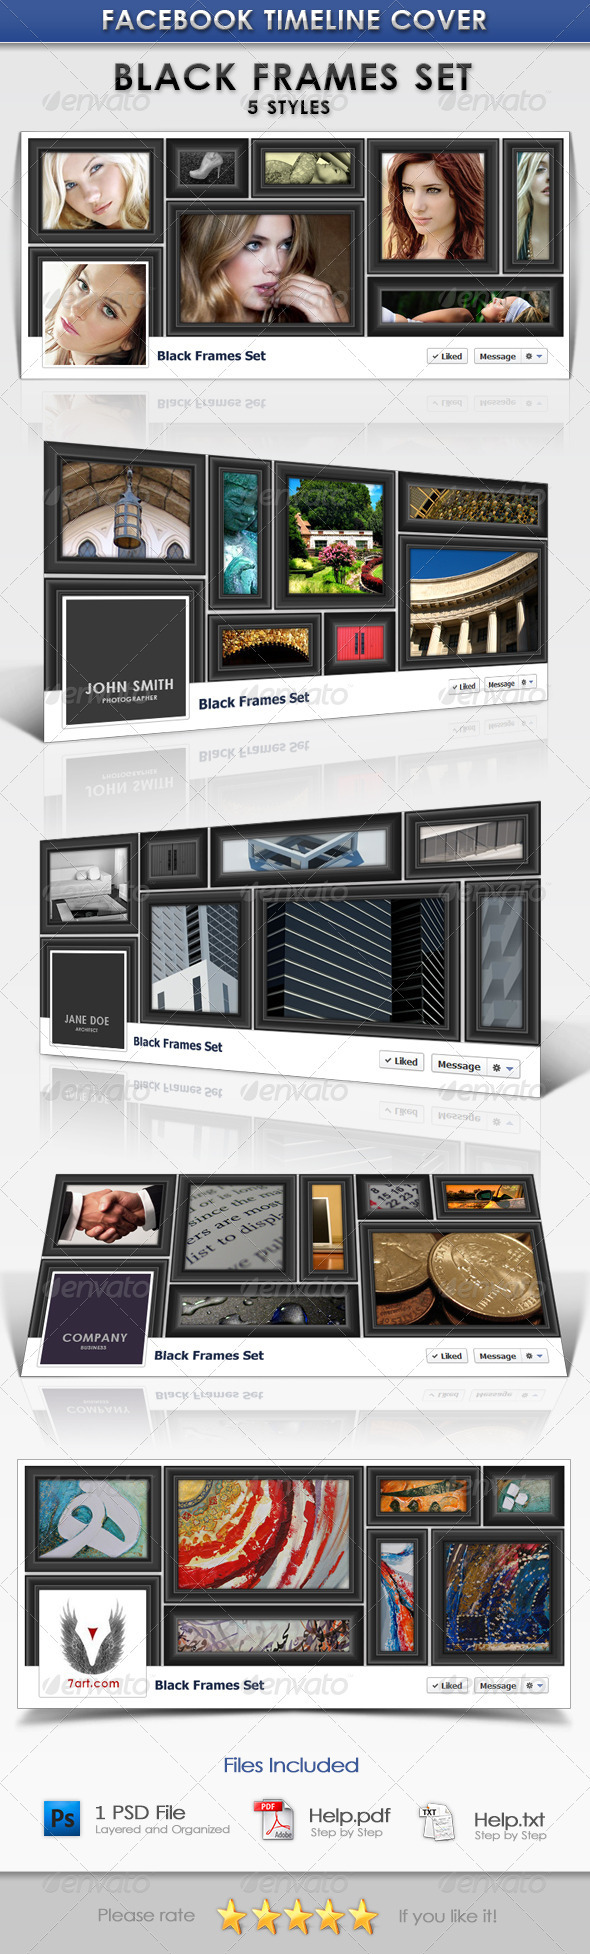 FB Cover Design Template - Black Frames - Facebook Timeline Covers Social Media